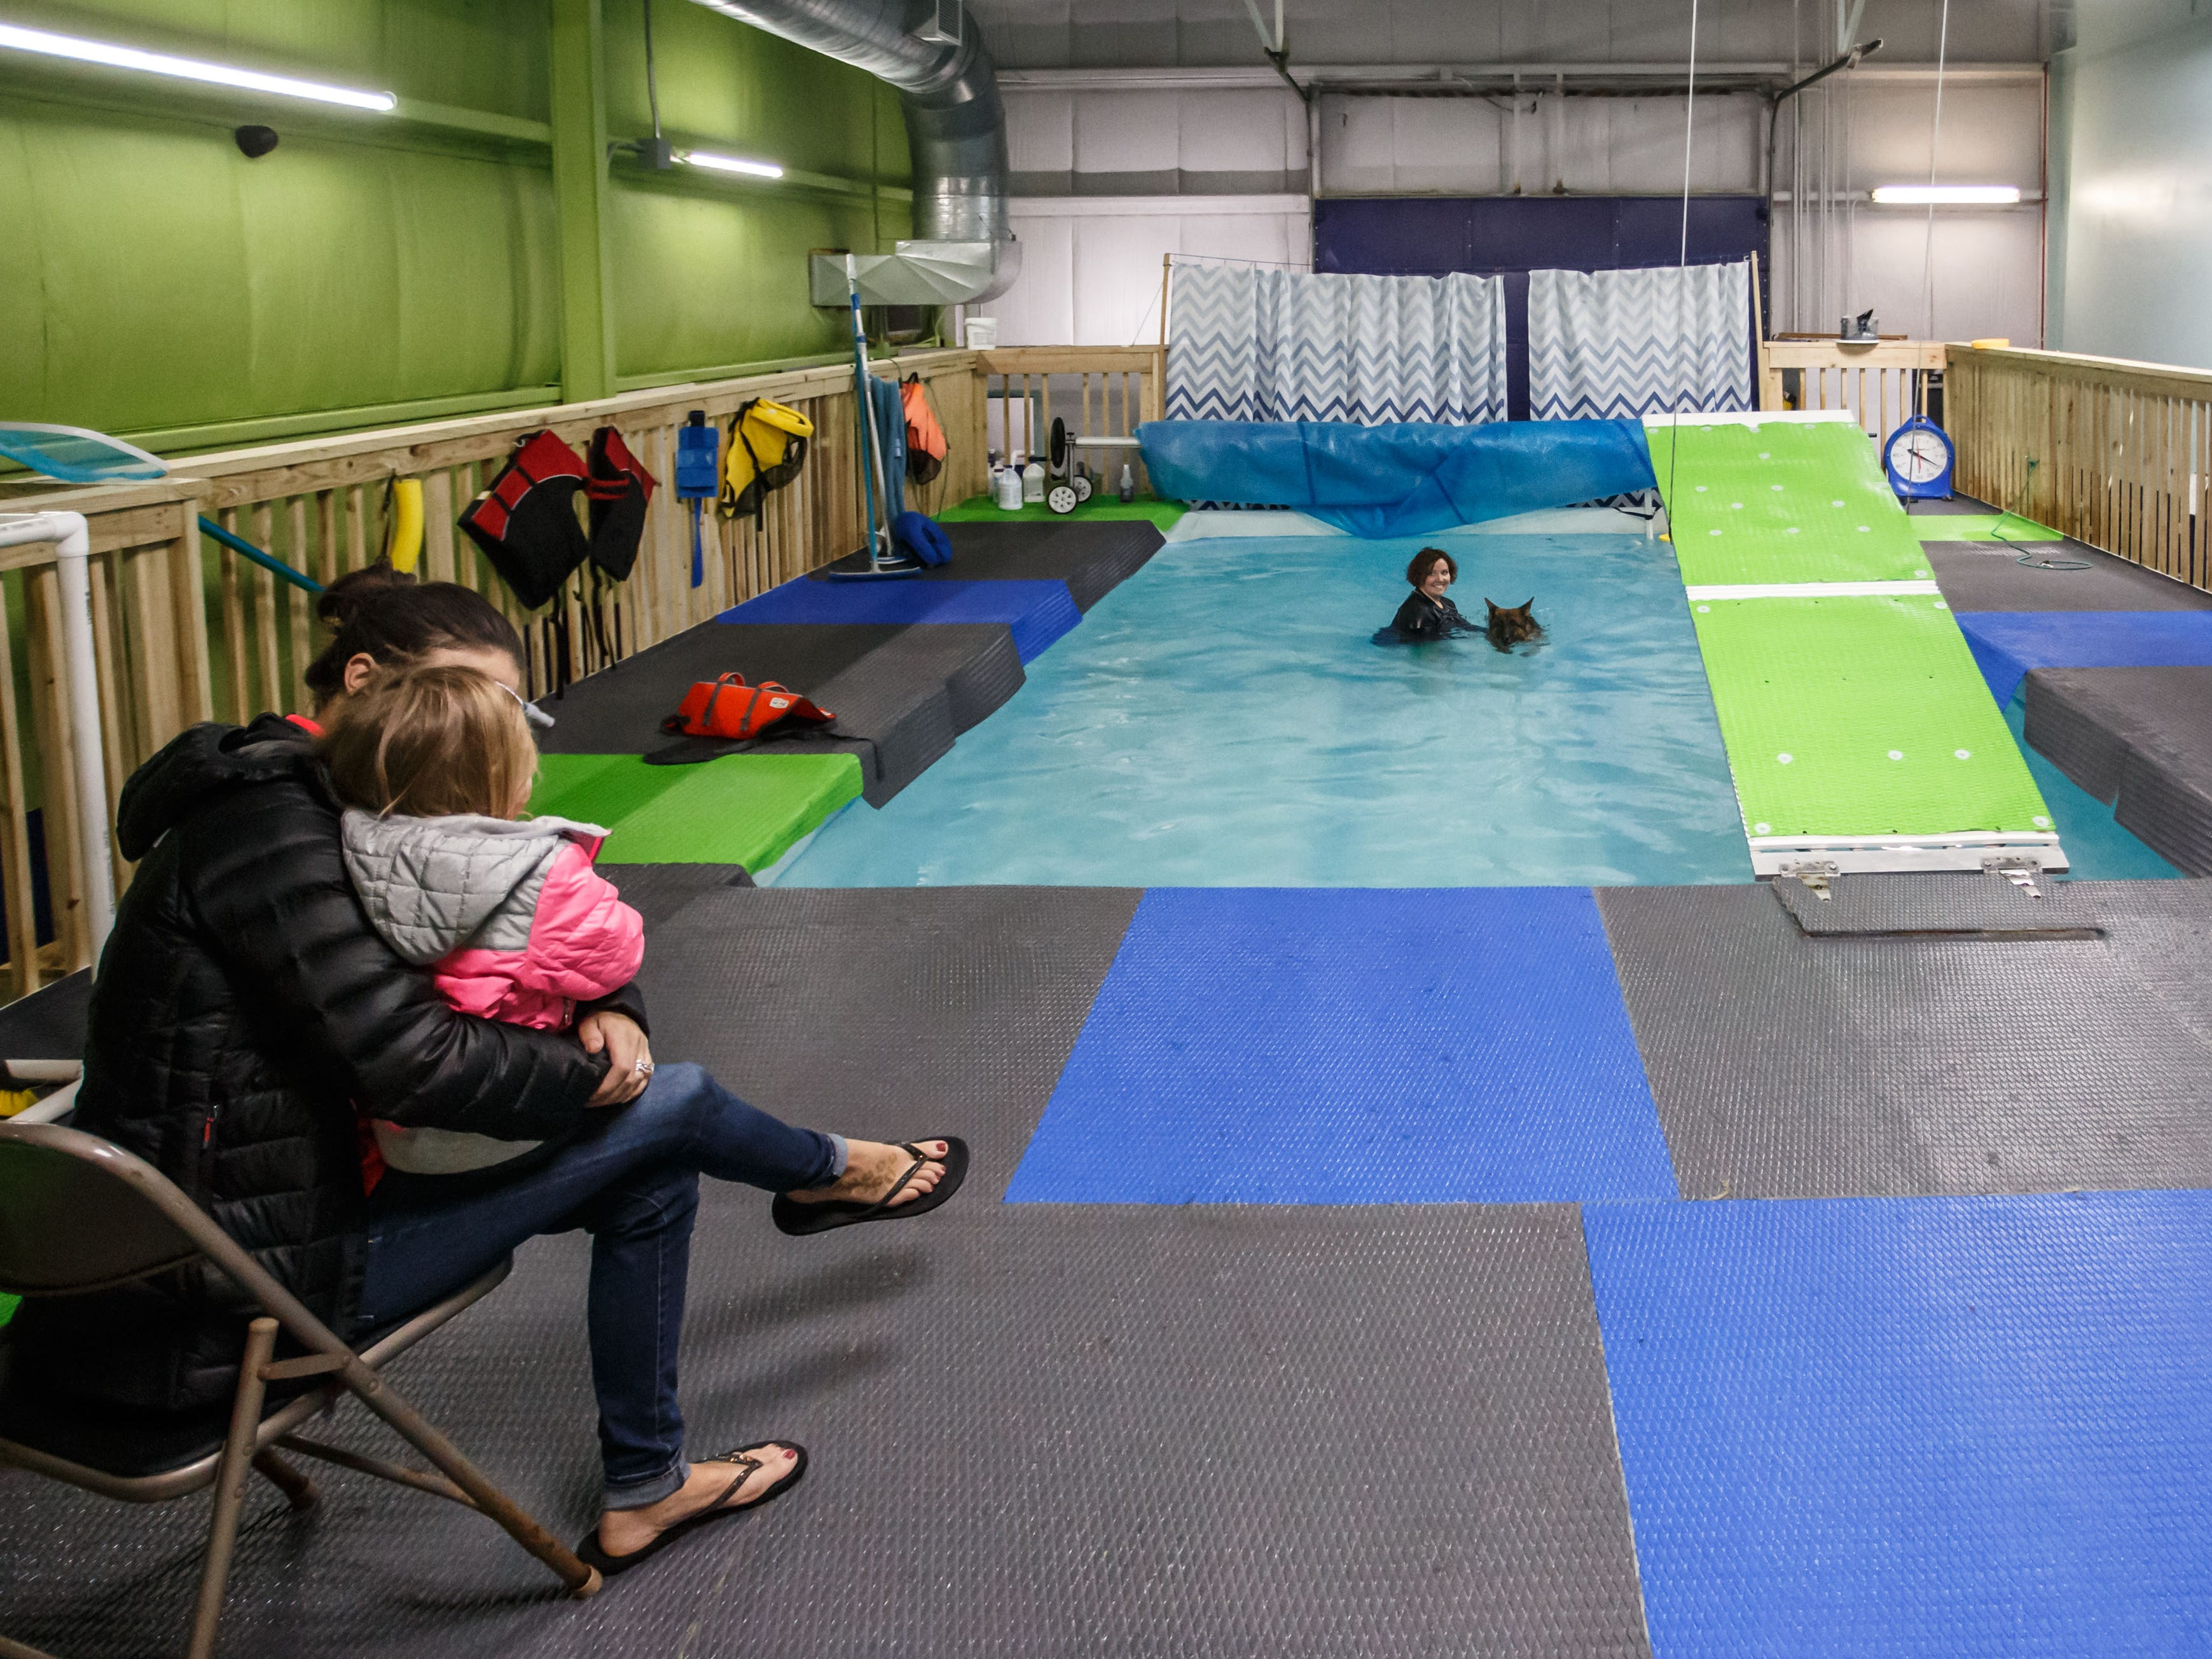 Brittany Ottow and her daughter Addison, of Hartford, look on as owner/trainer Becky Pease works with their German Shepherd in the indoor heated dog pool at Aqua Therapups in Slinger on Monday, Oct. 29, 2018.